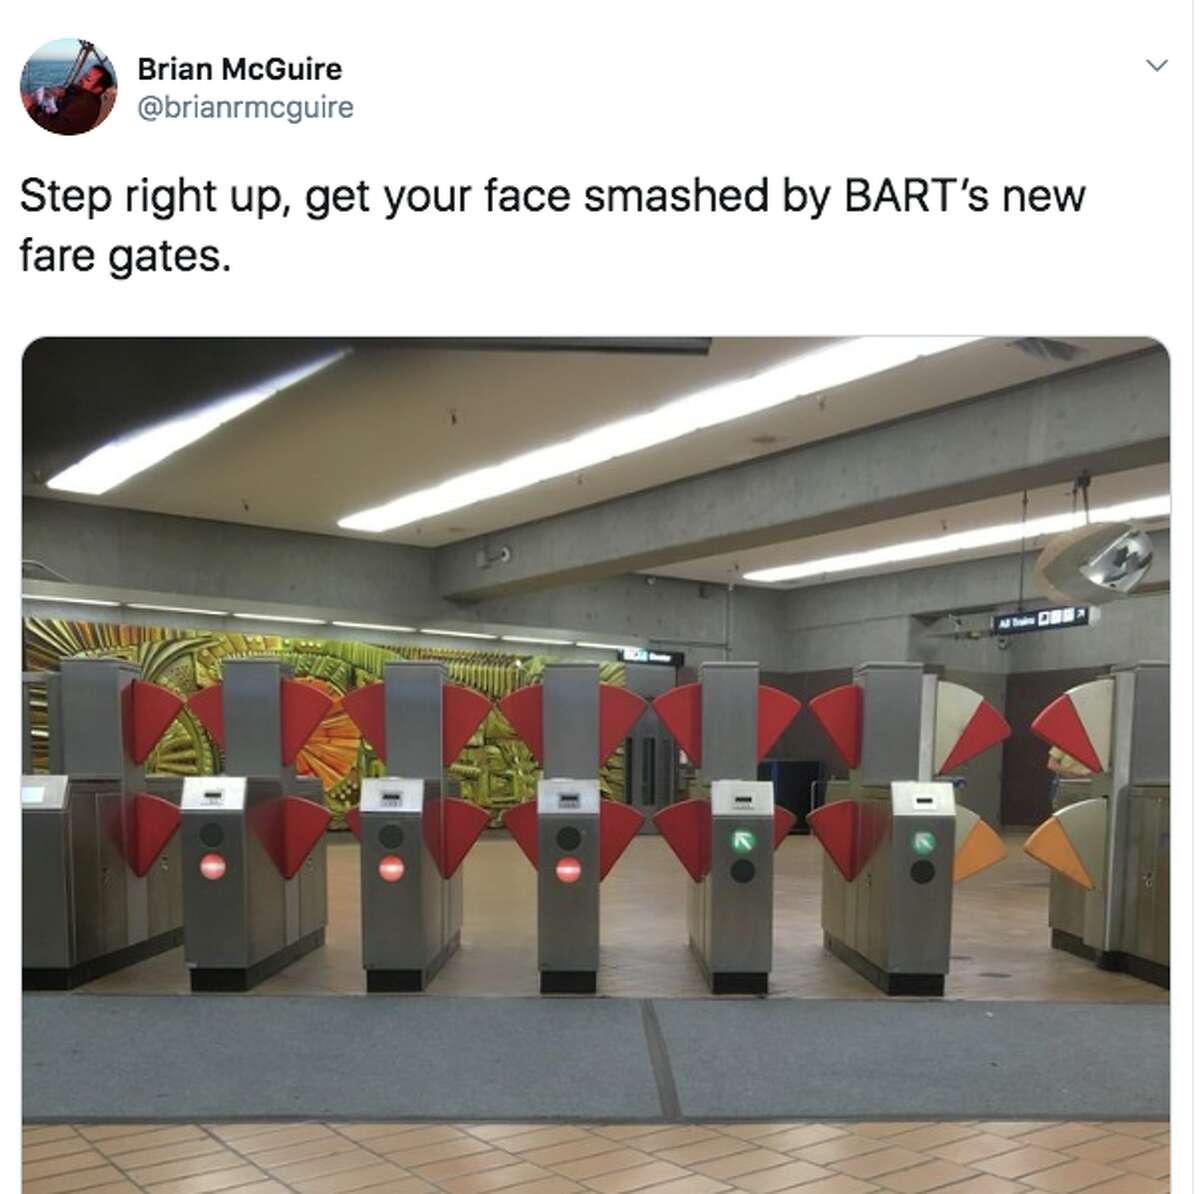 Social media users have been both shocked and amused by the new fare gate design BART is testing out at the Richmond station.